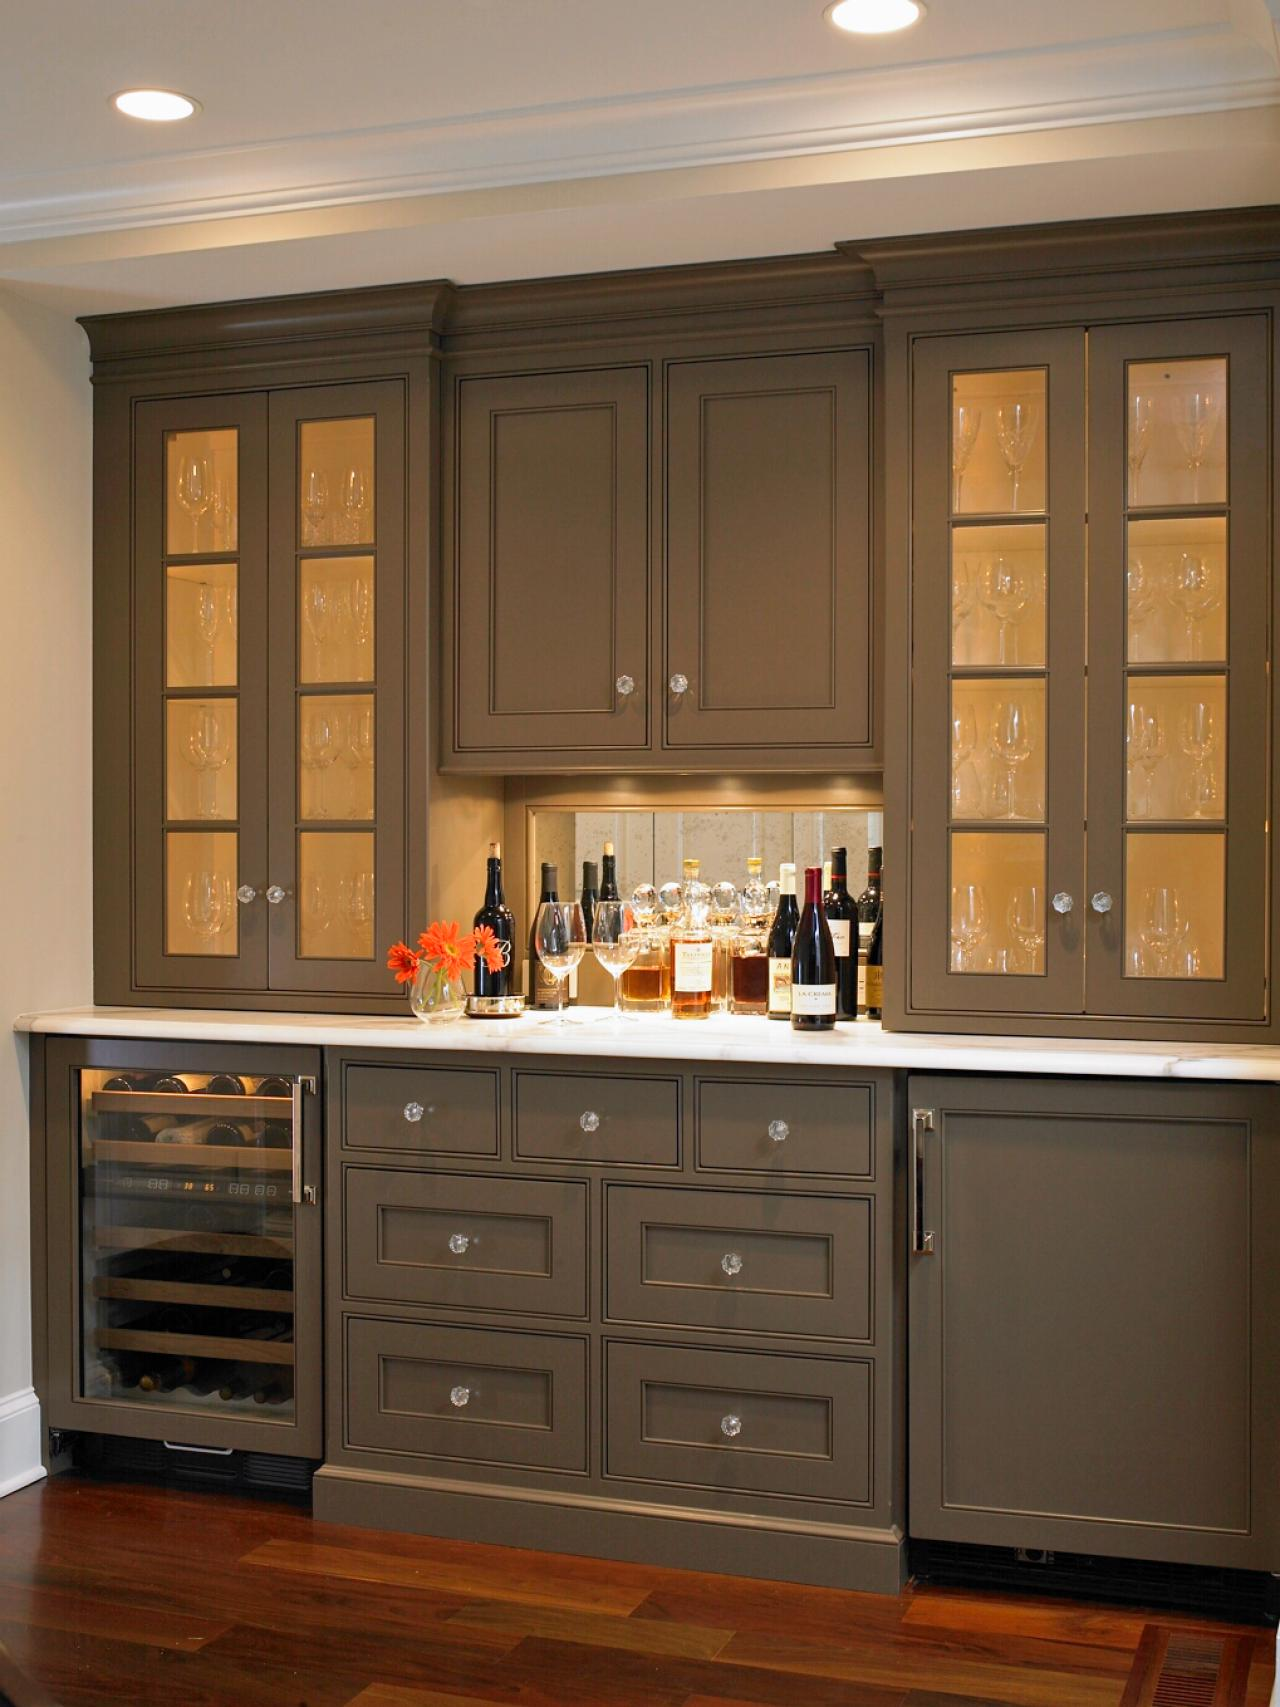 Kitchen Cabinet Paint Ideas Simple Ideas For Painting Kitchen Cabinets  Pictures From Hgtv  Hgtv Inspiration Design